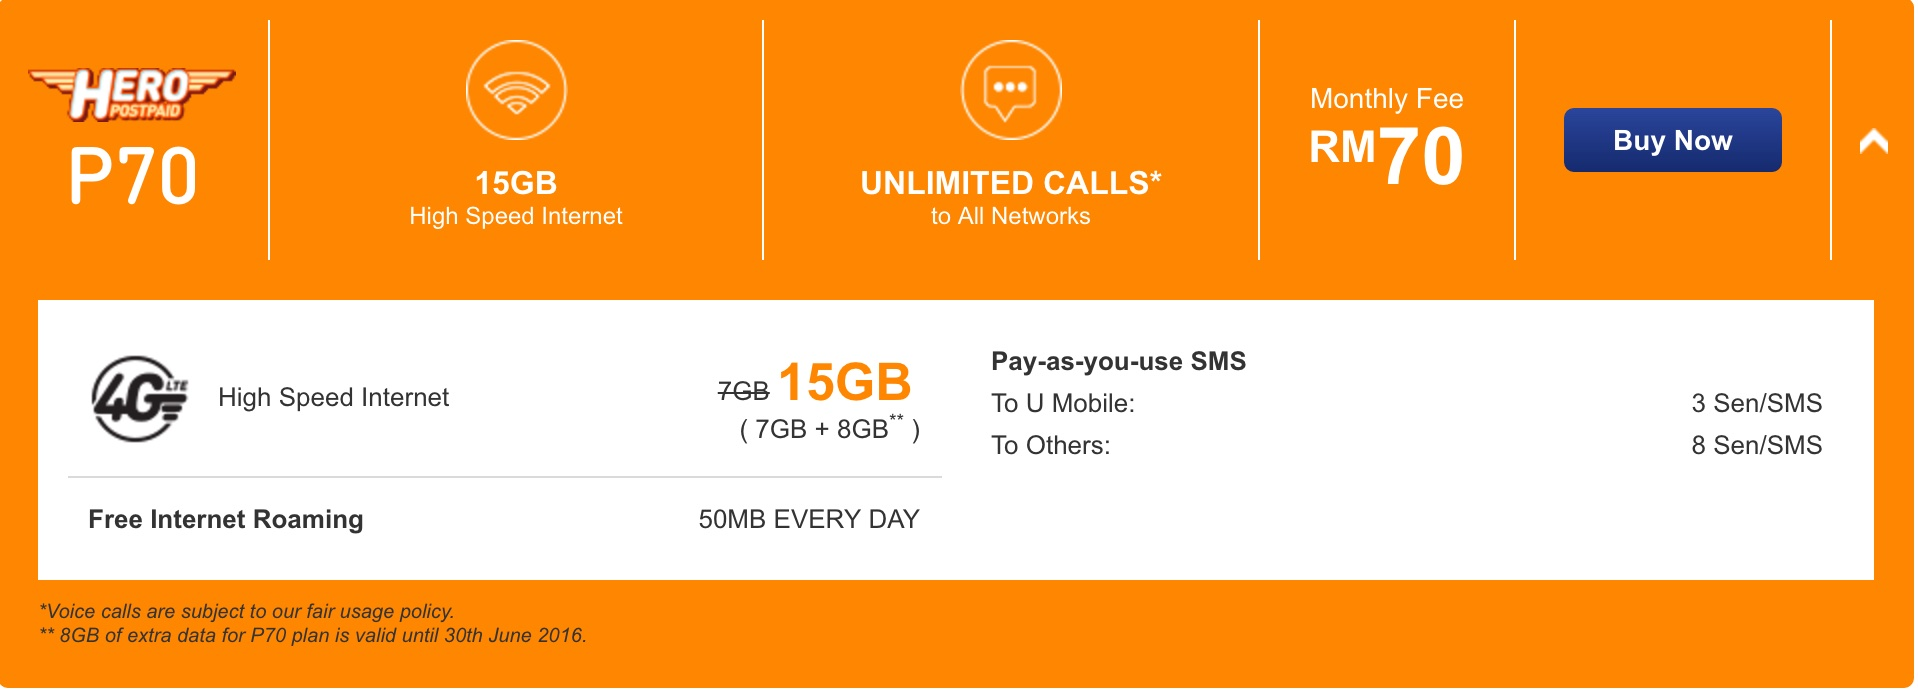 U Mobile - Offers 15GB of data at RM70